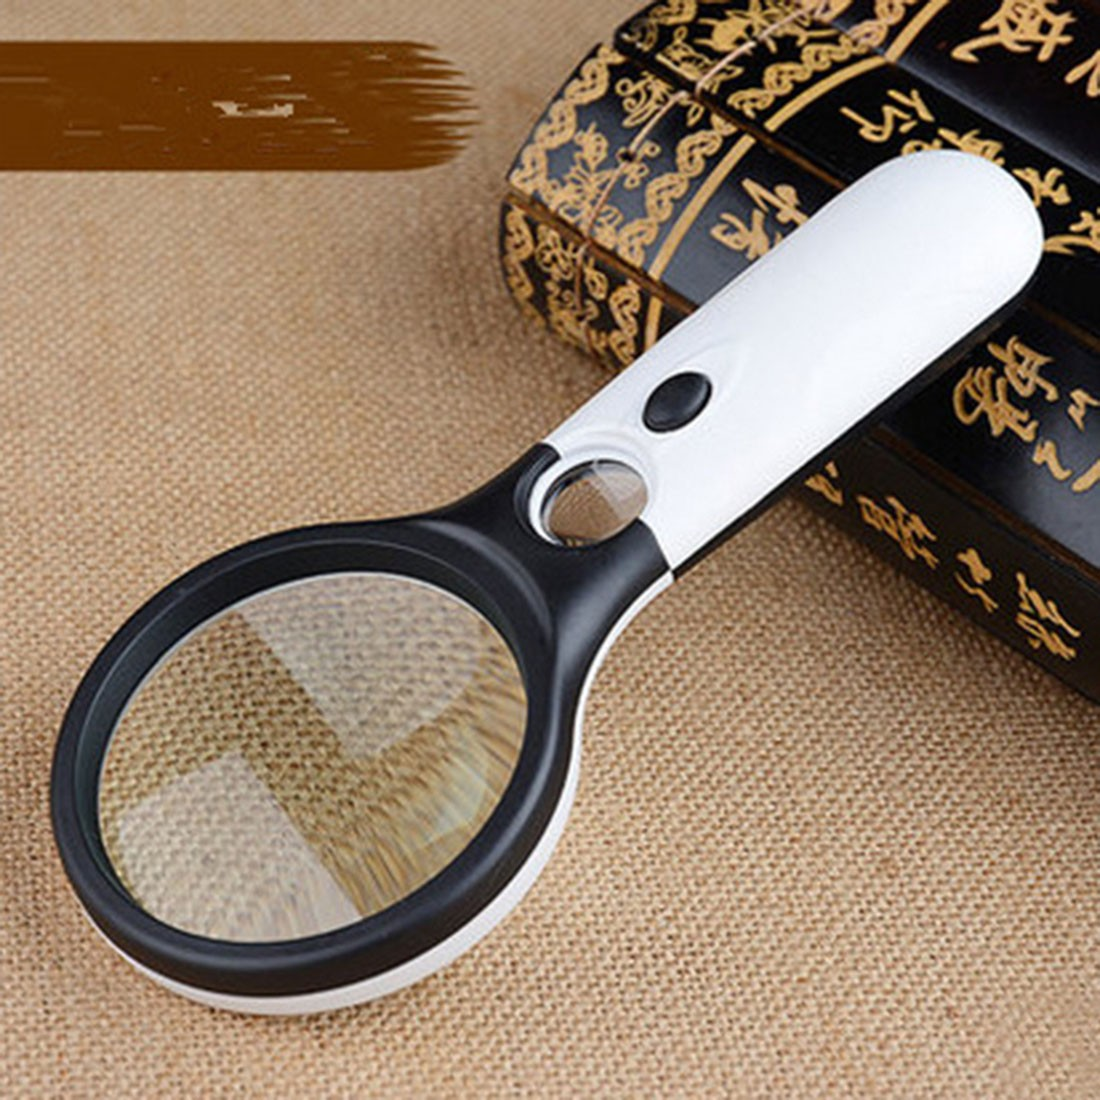 High Quality Newest High Quality 3 Led Lights 3X 45X Handheld Reading Magnifier Lens Magnifier Jewelry Loupe Magnifying GlassHigh Quality Newest High Quality 3 Led Lights 3X 45X Handheld Reading Magnifier Lens Magnifier Jewelry Loupe Magnifying Glass